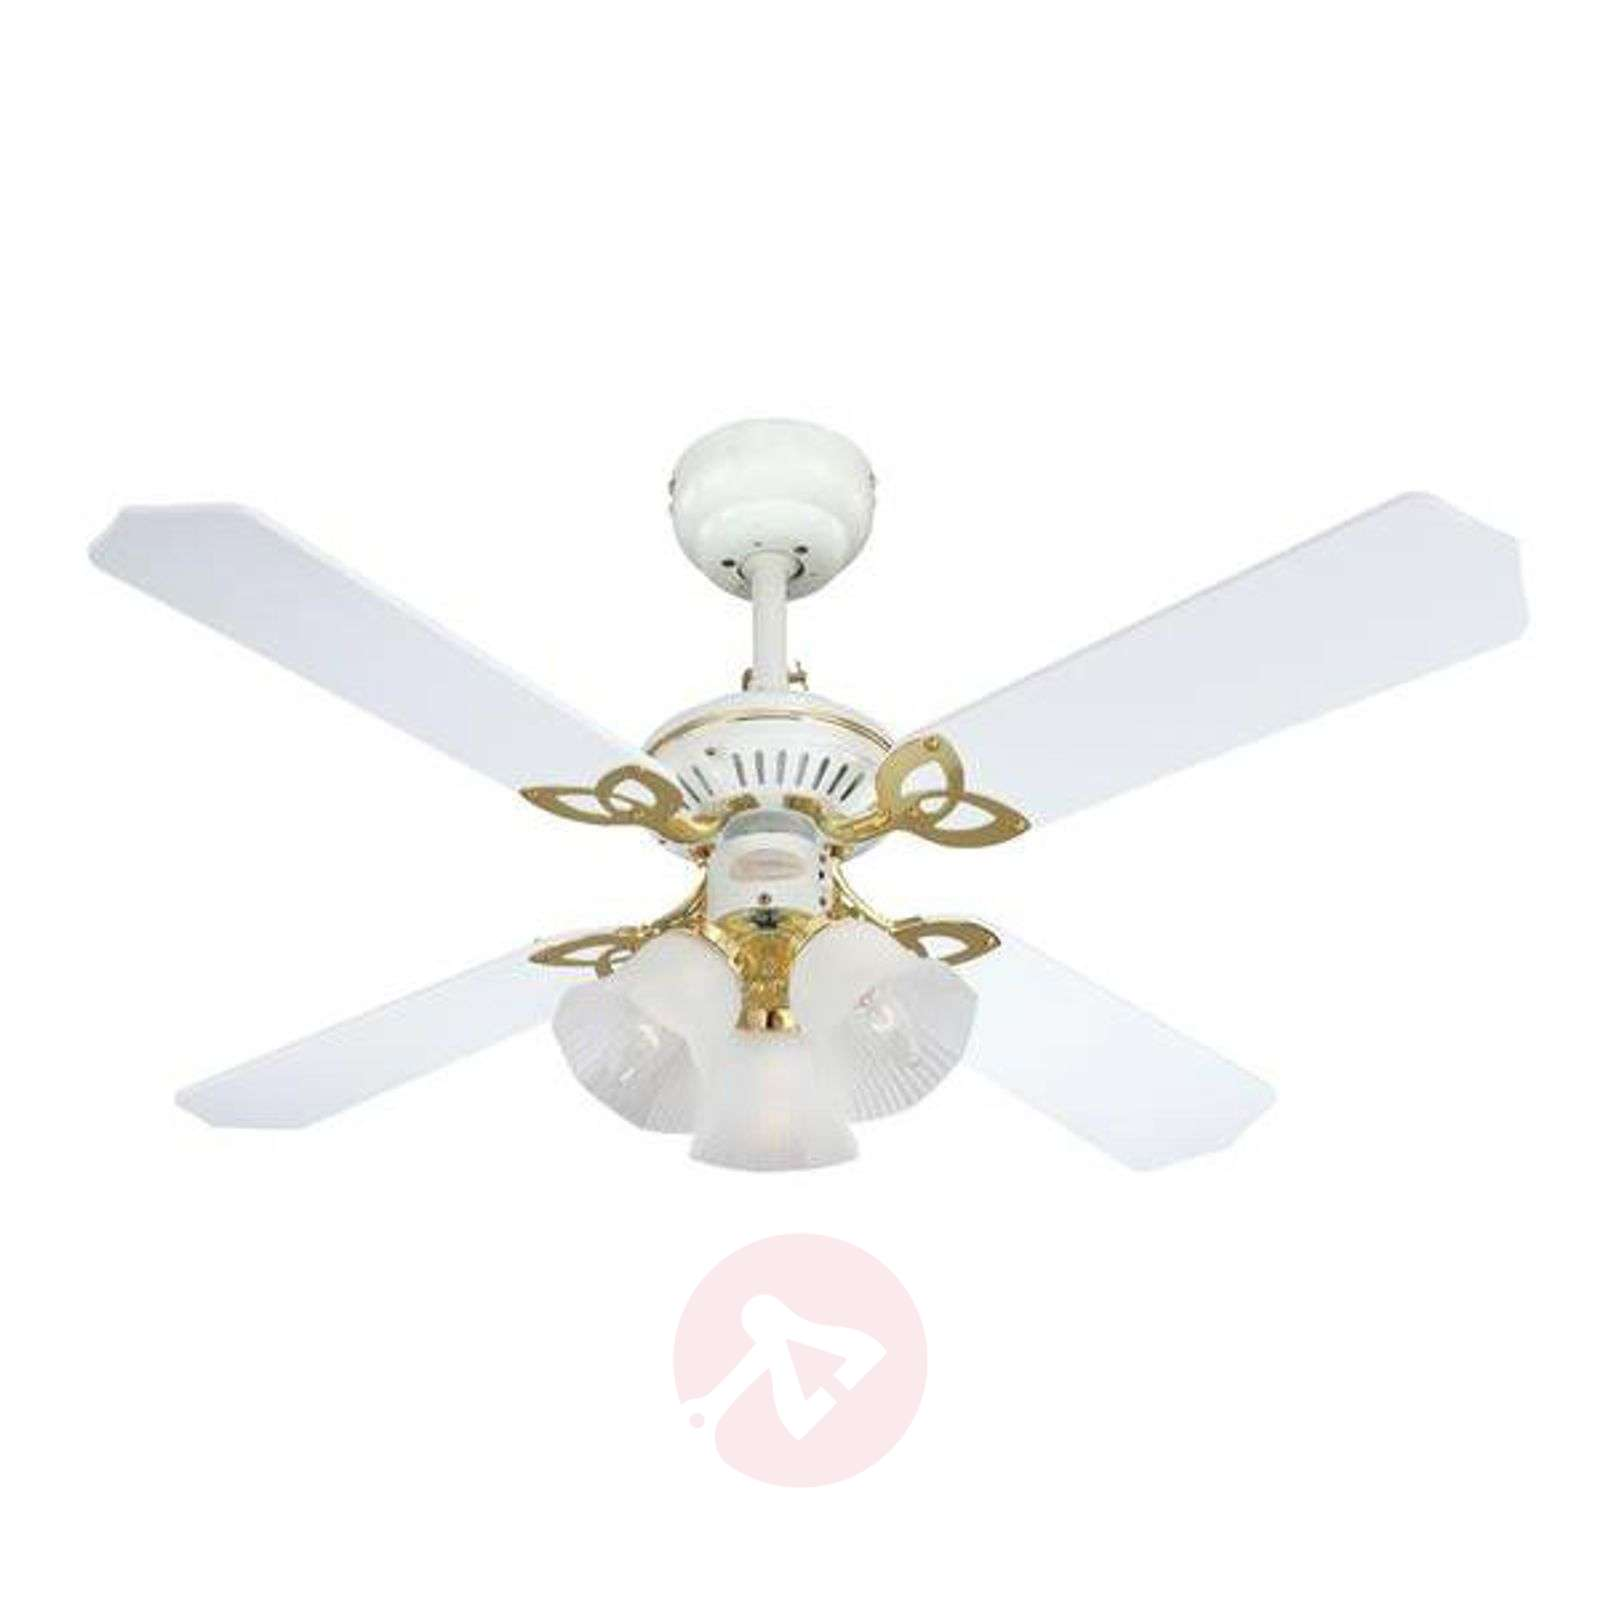 Exclusive Princess Trio ceiling fan in white-9602167-05